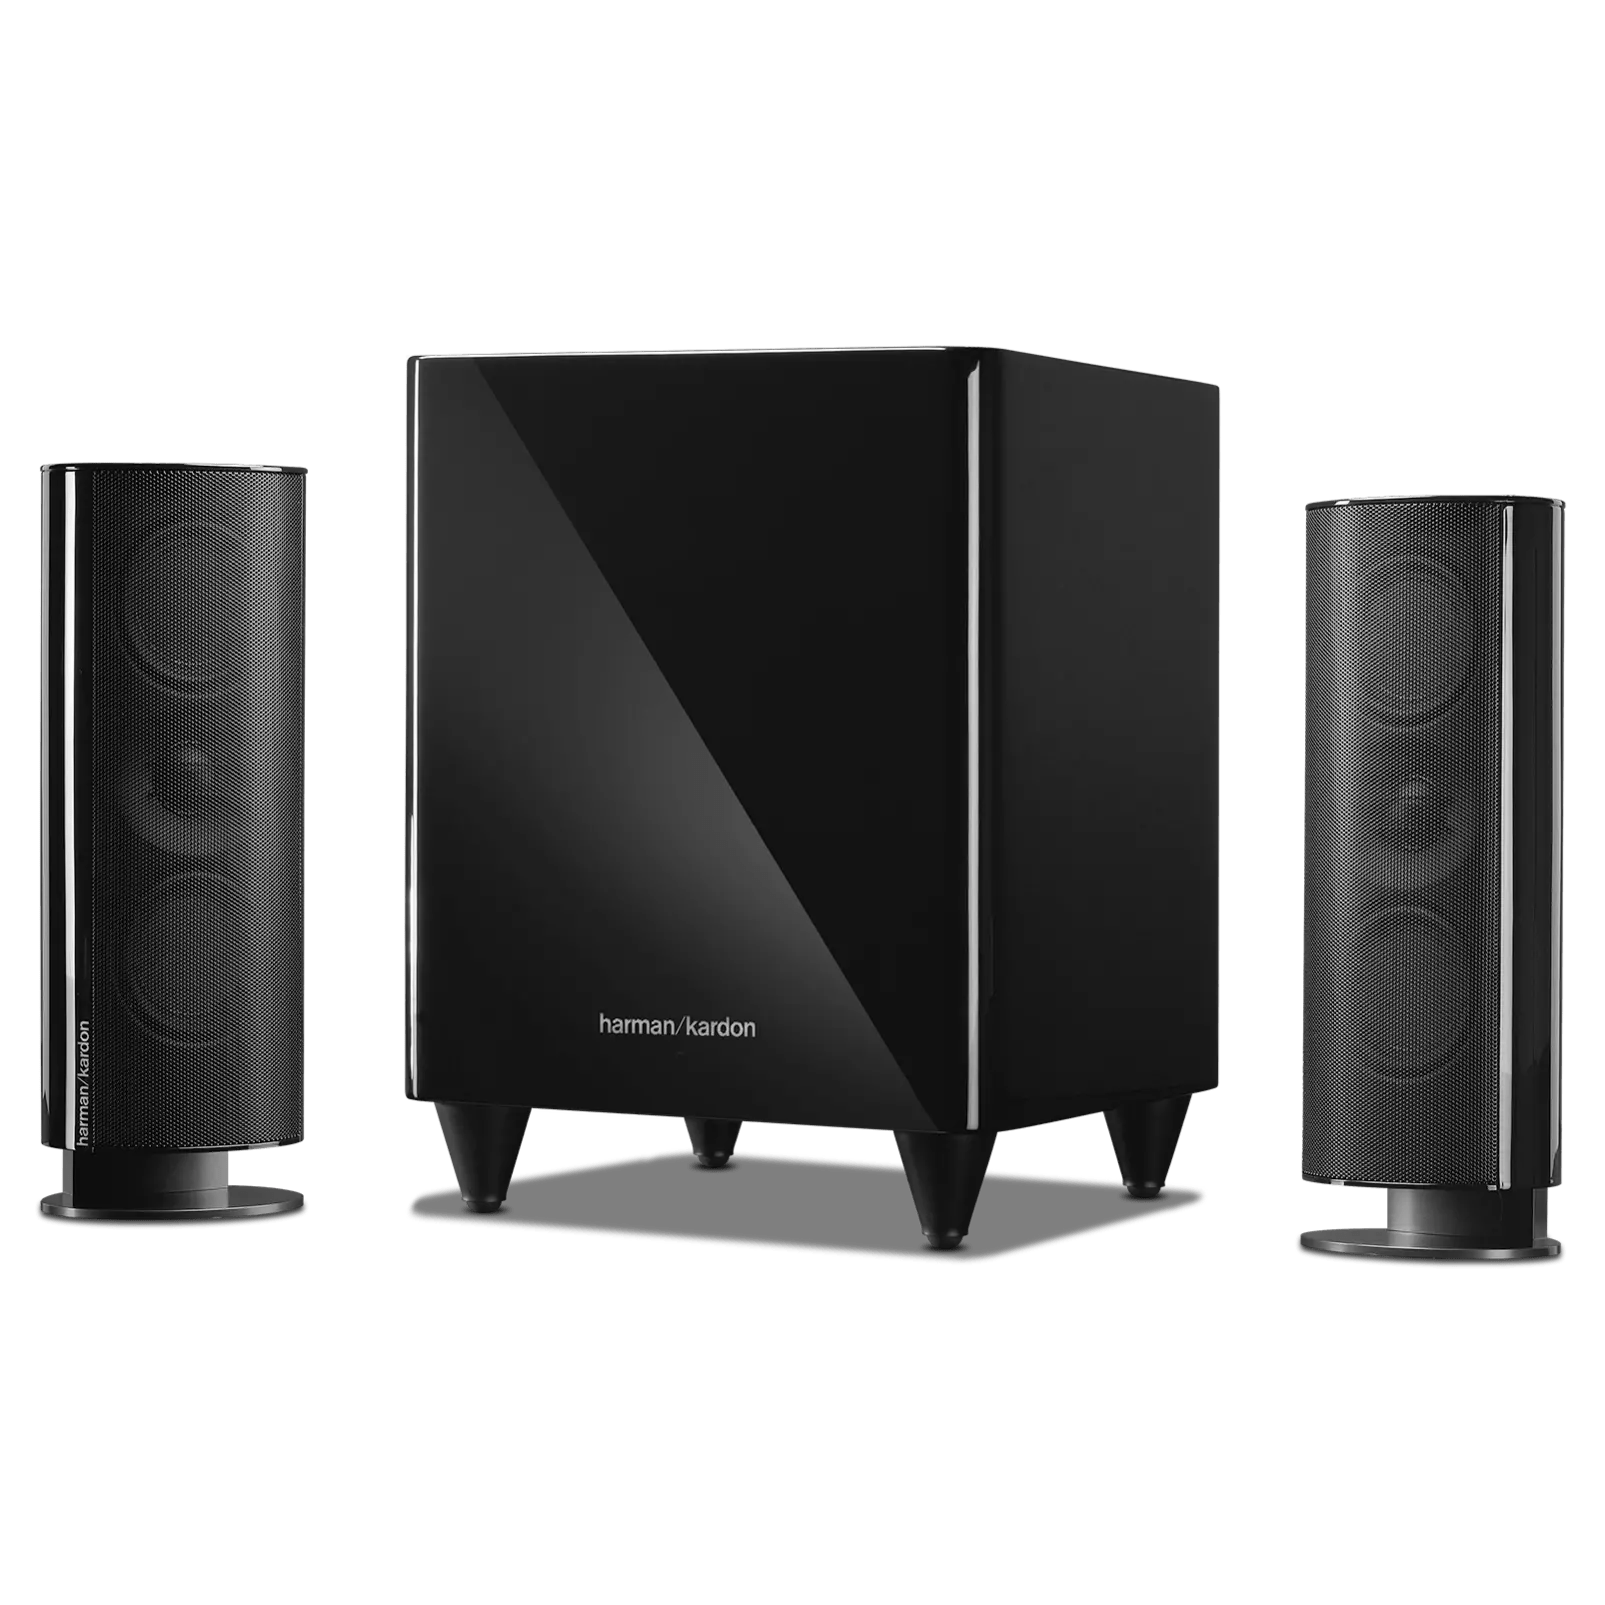 Bds 300 Harman Kardon Home Theater Review 2017 Review Home Co